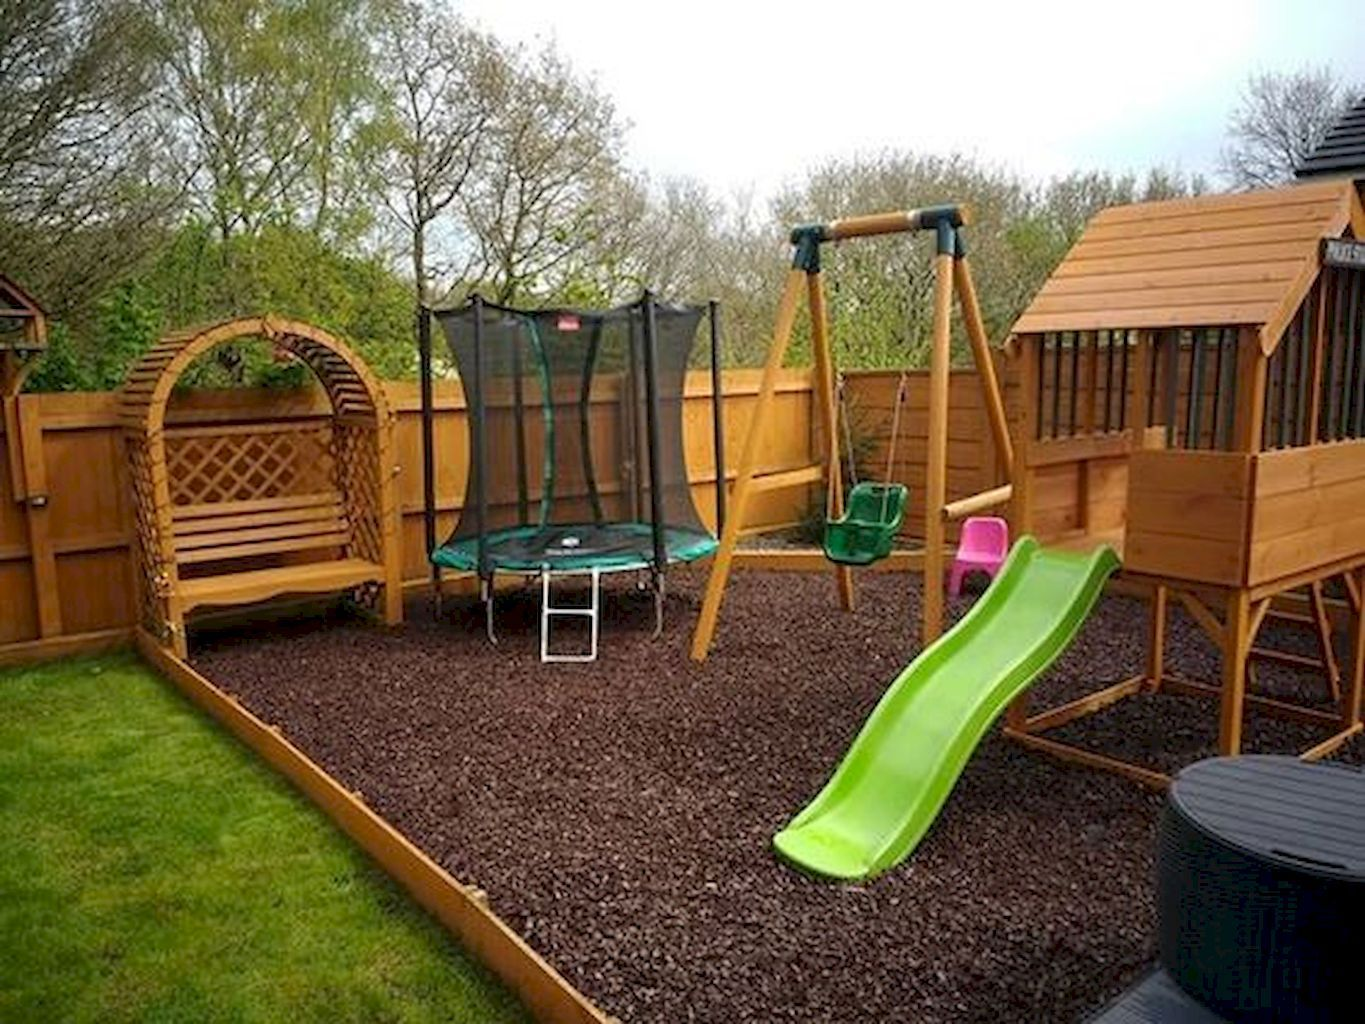 70 Spectacular Kids Garden Ideas With Outdoor Play Areas Outdoor